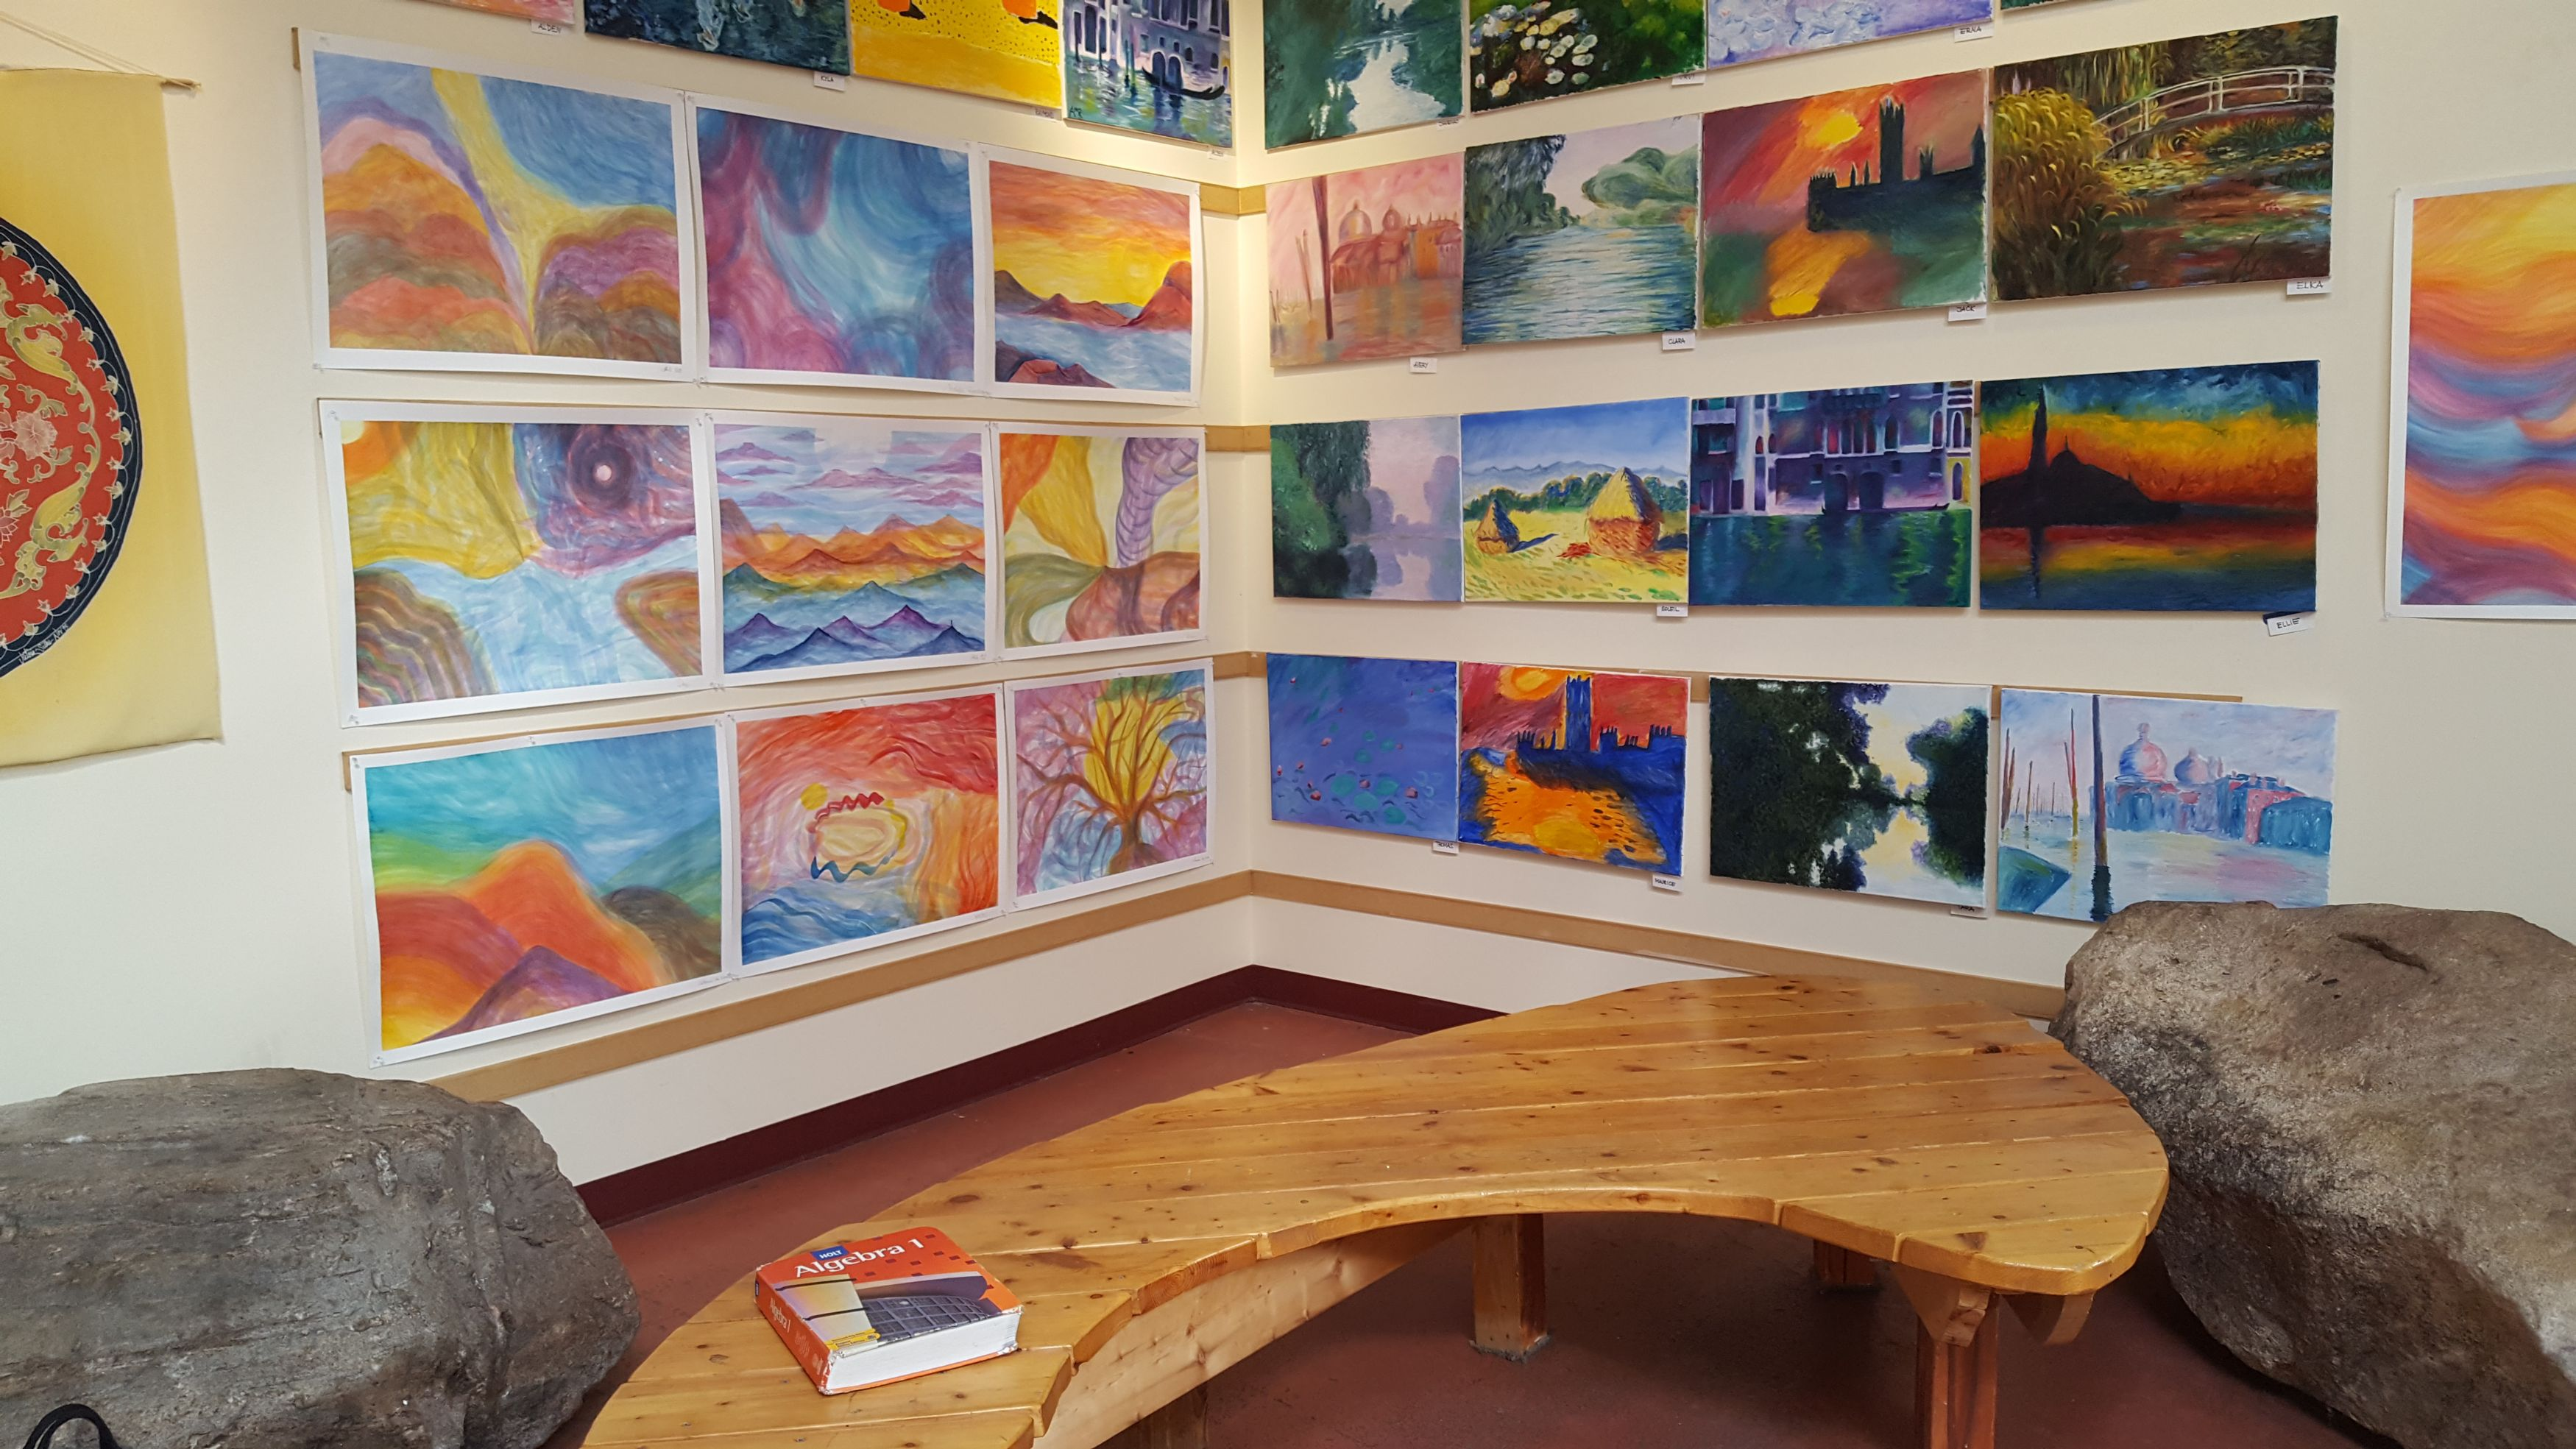 School hallway with bench and artwork